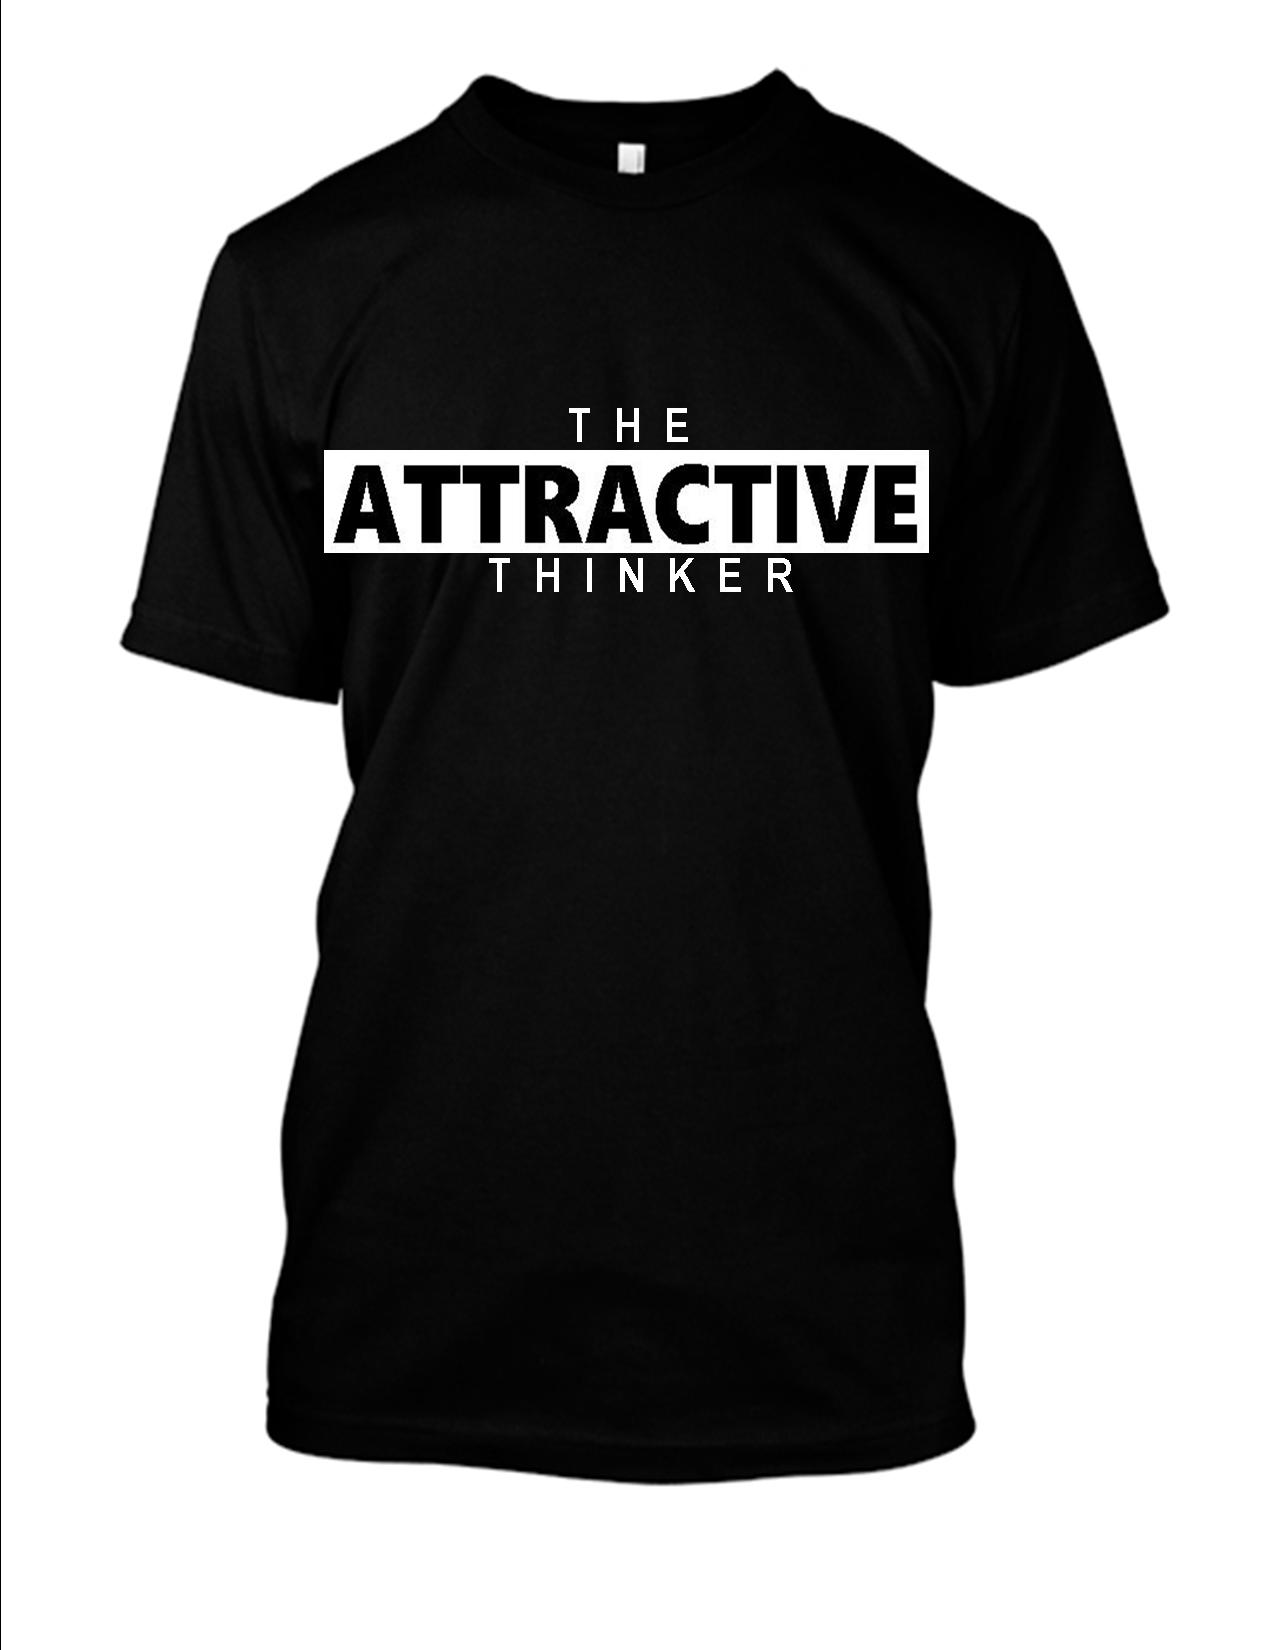 The Attractive Thinker Female T Shirt 2